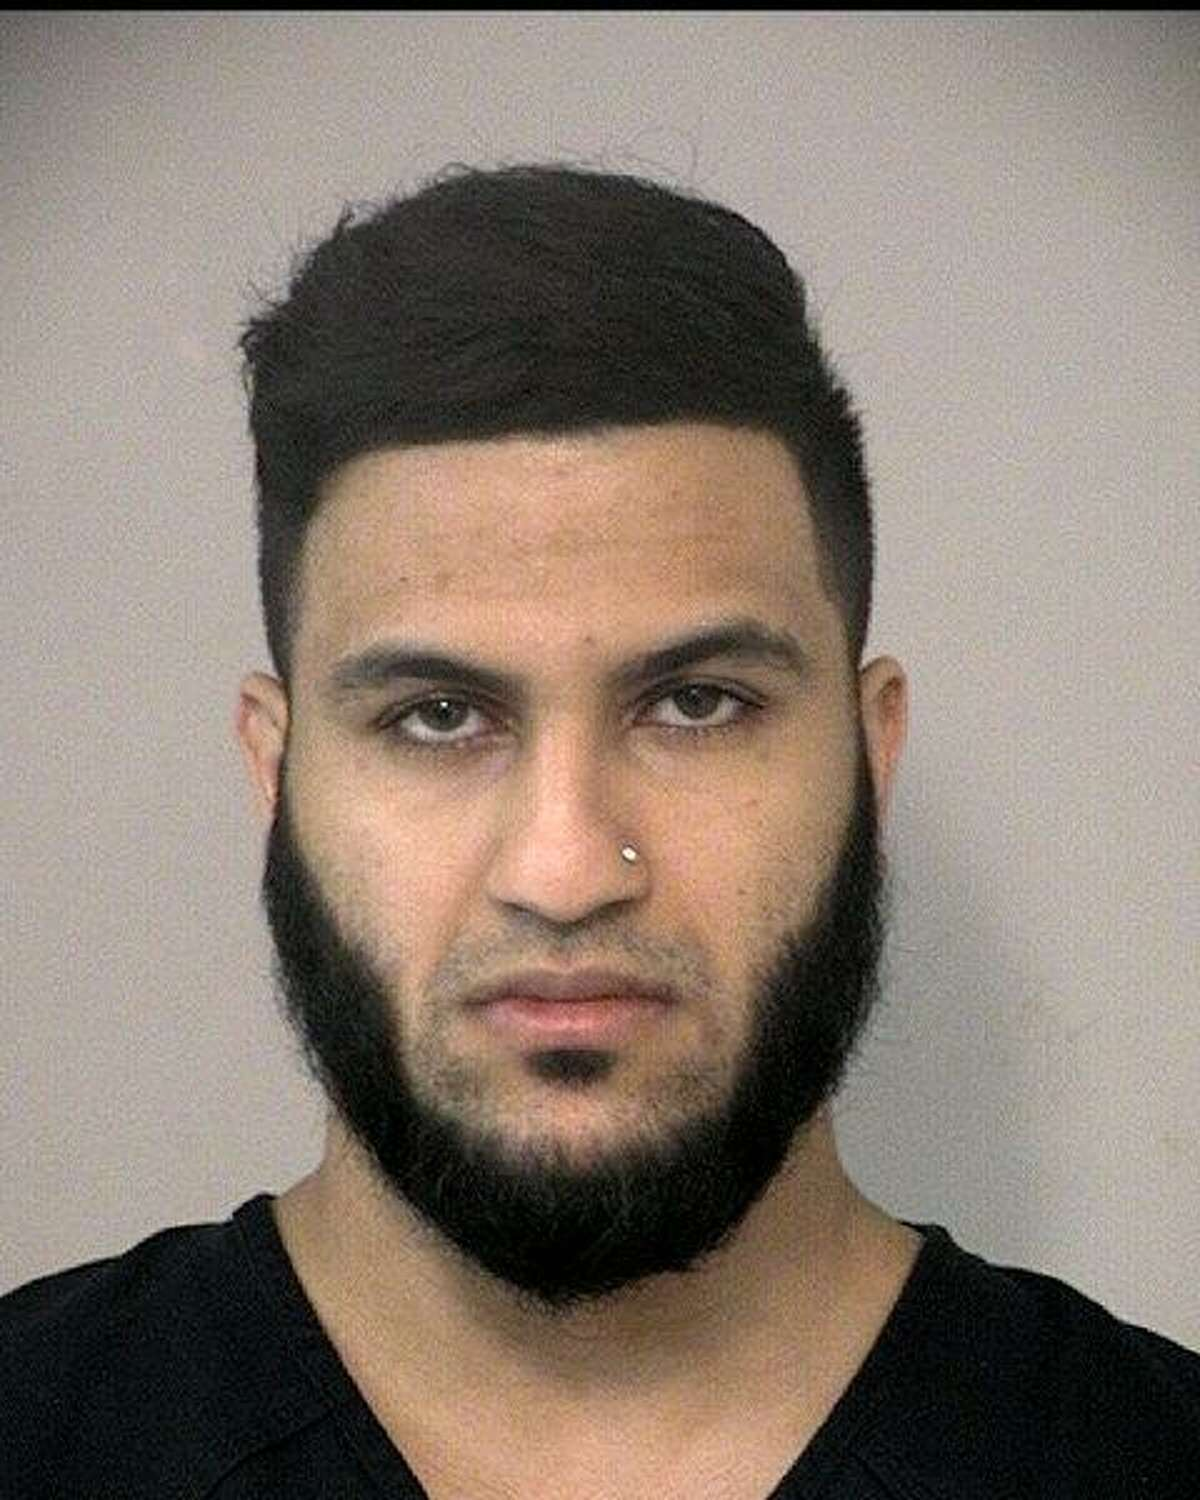 Ahmed Altaee was charged with the third-degree felony of aggravated promotion of prostitution. He also received a five-year prison sentence for the Aggravated Assault.